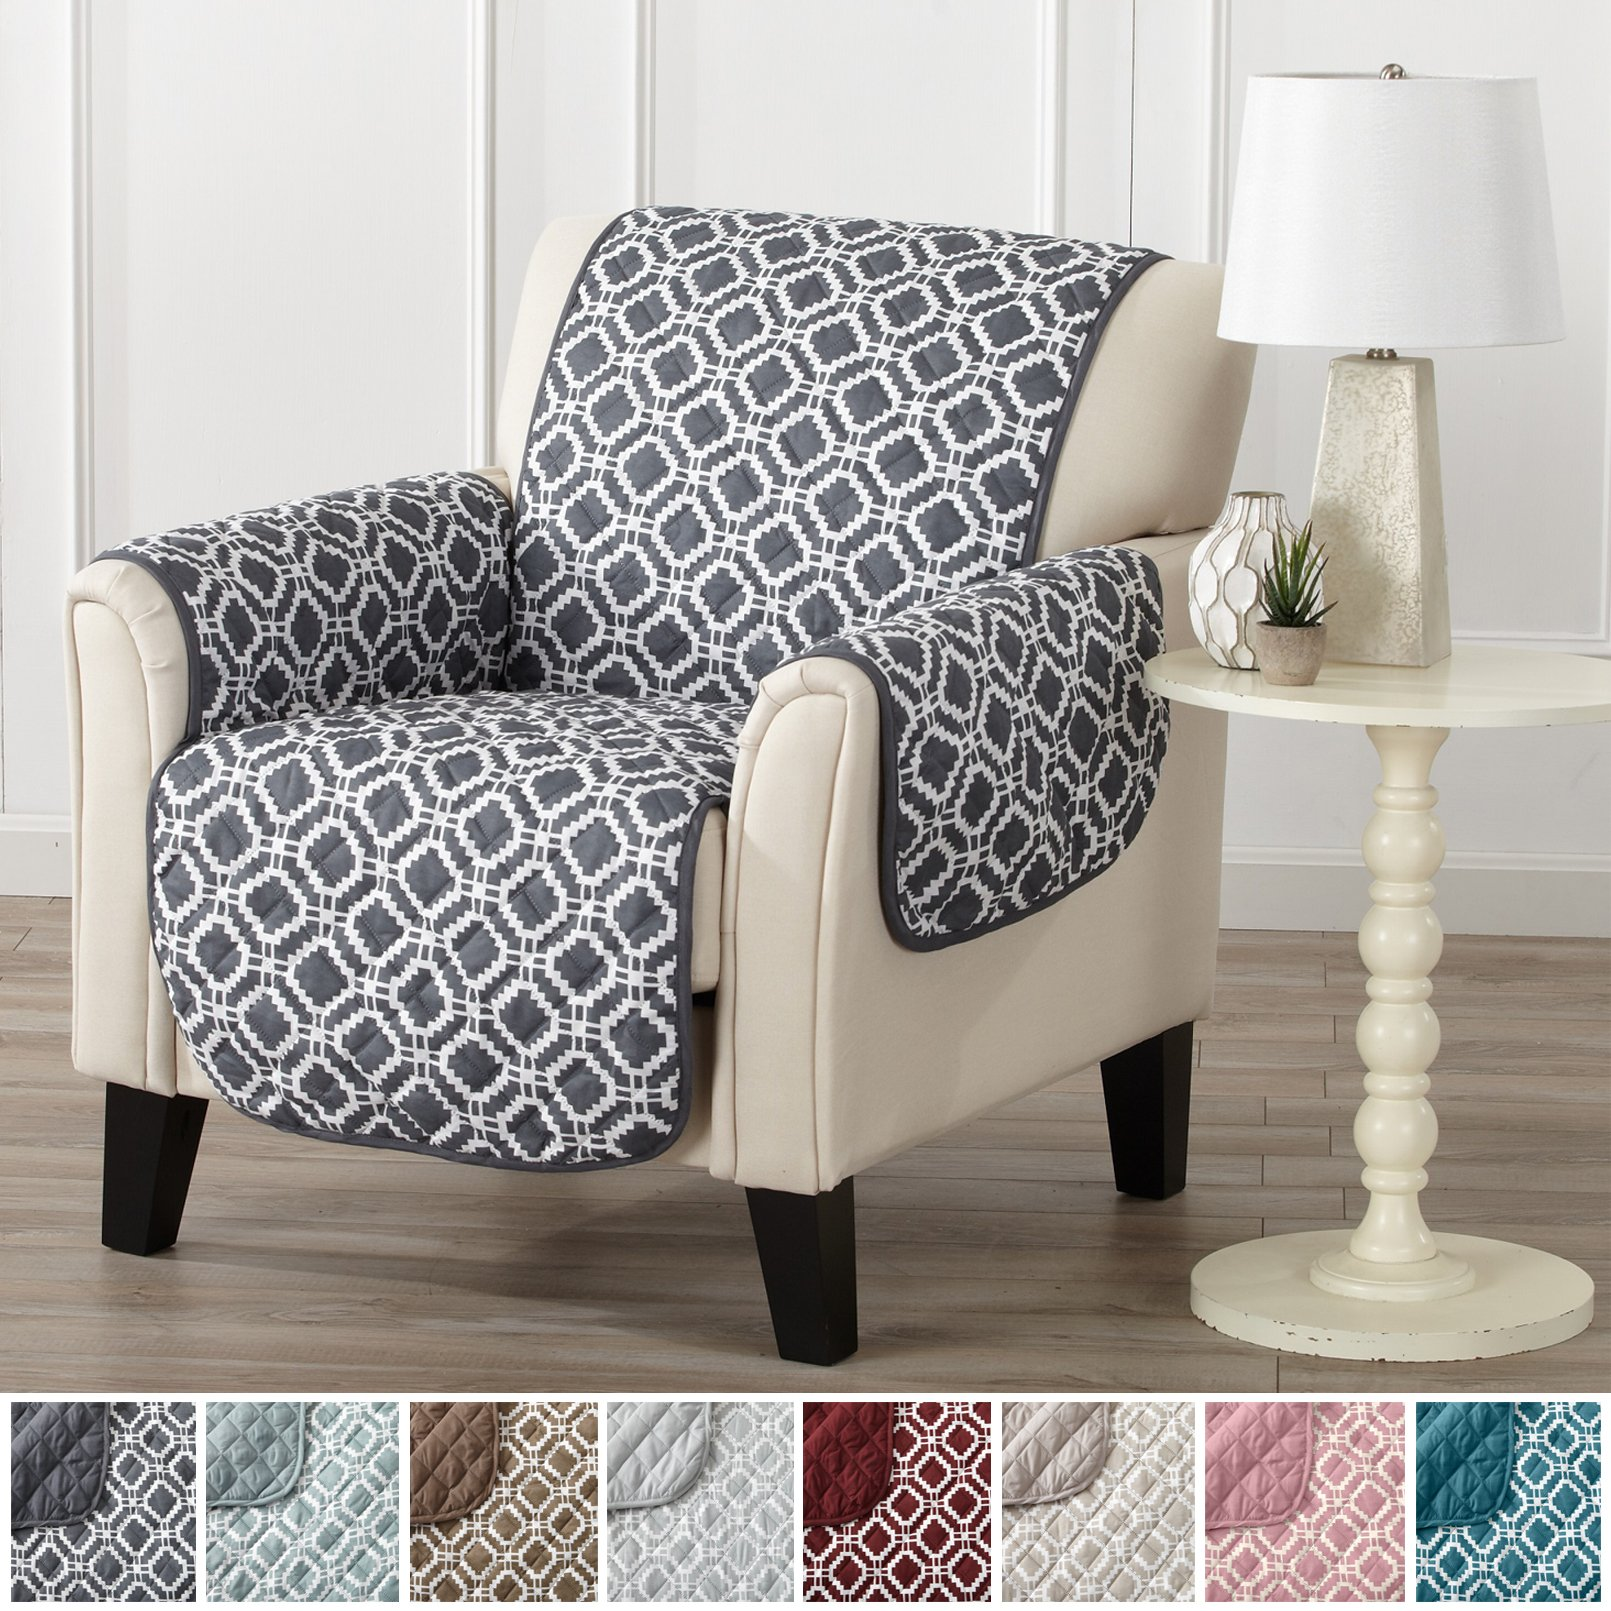 Modern Printed Reversible Stain Resistant Furniture Protector with Geometric Design. Perfect Cover for Pets and Kids. Adjustable Elastic Straps Included. Liliana Collection (Chair, Steel Grey)